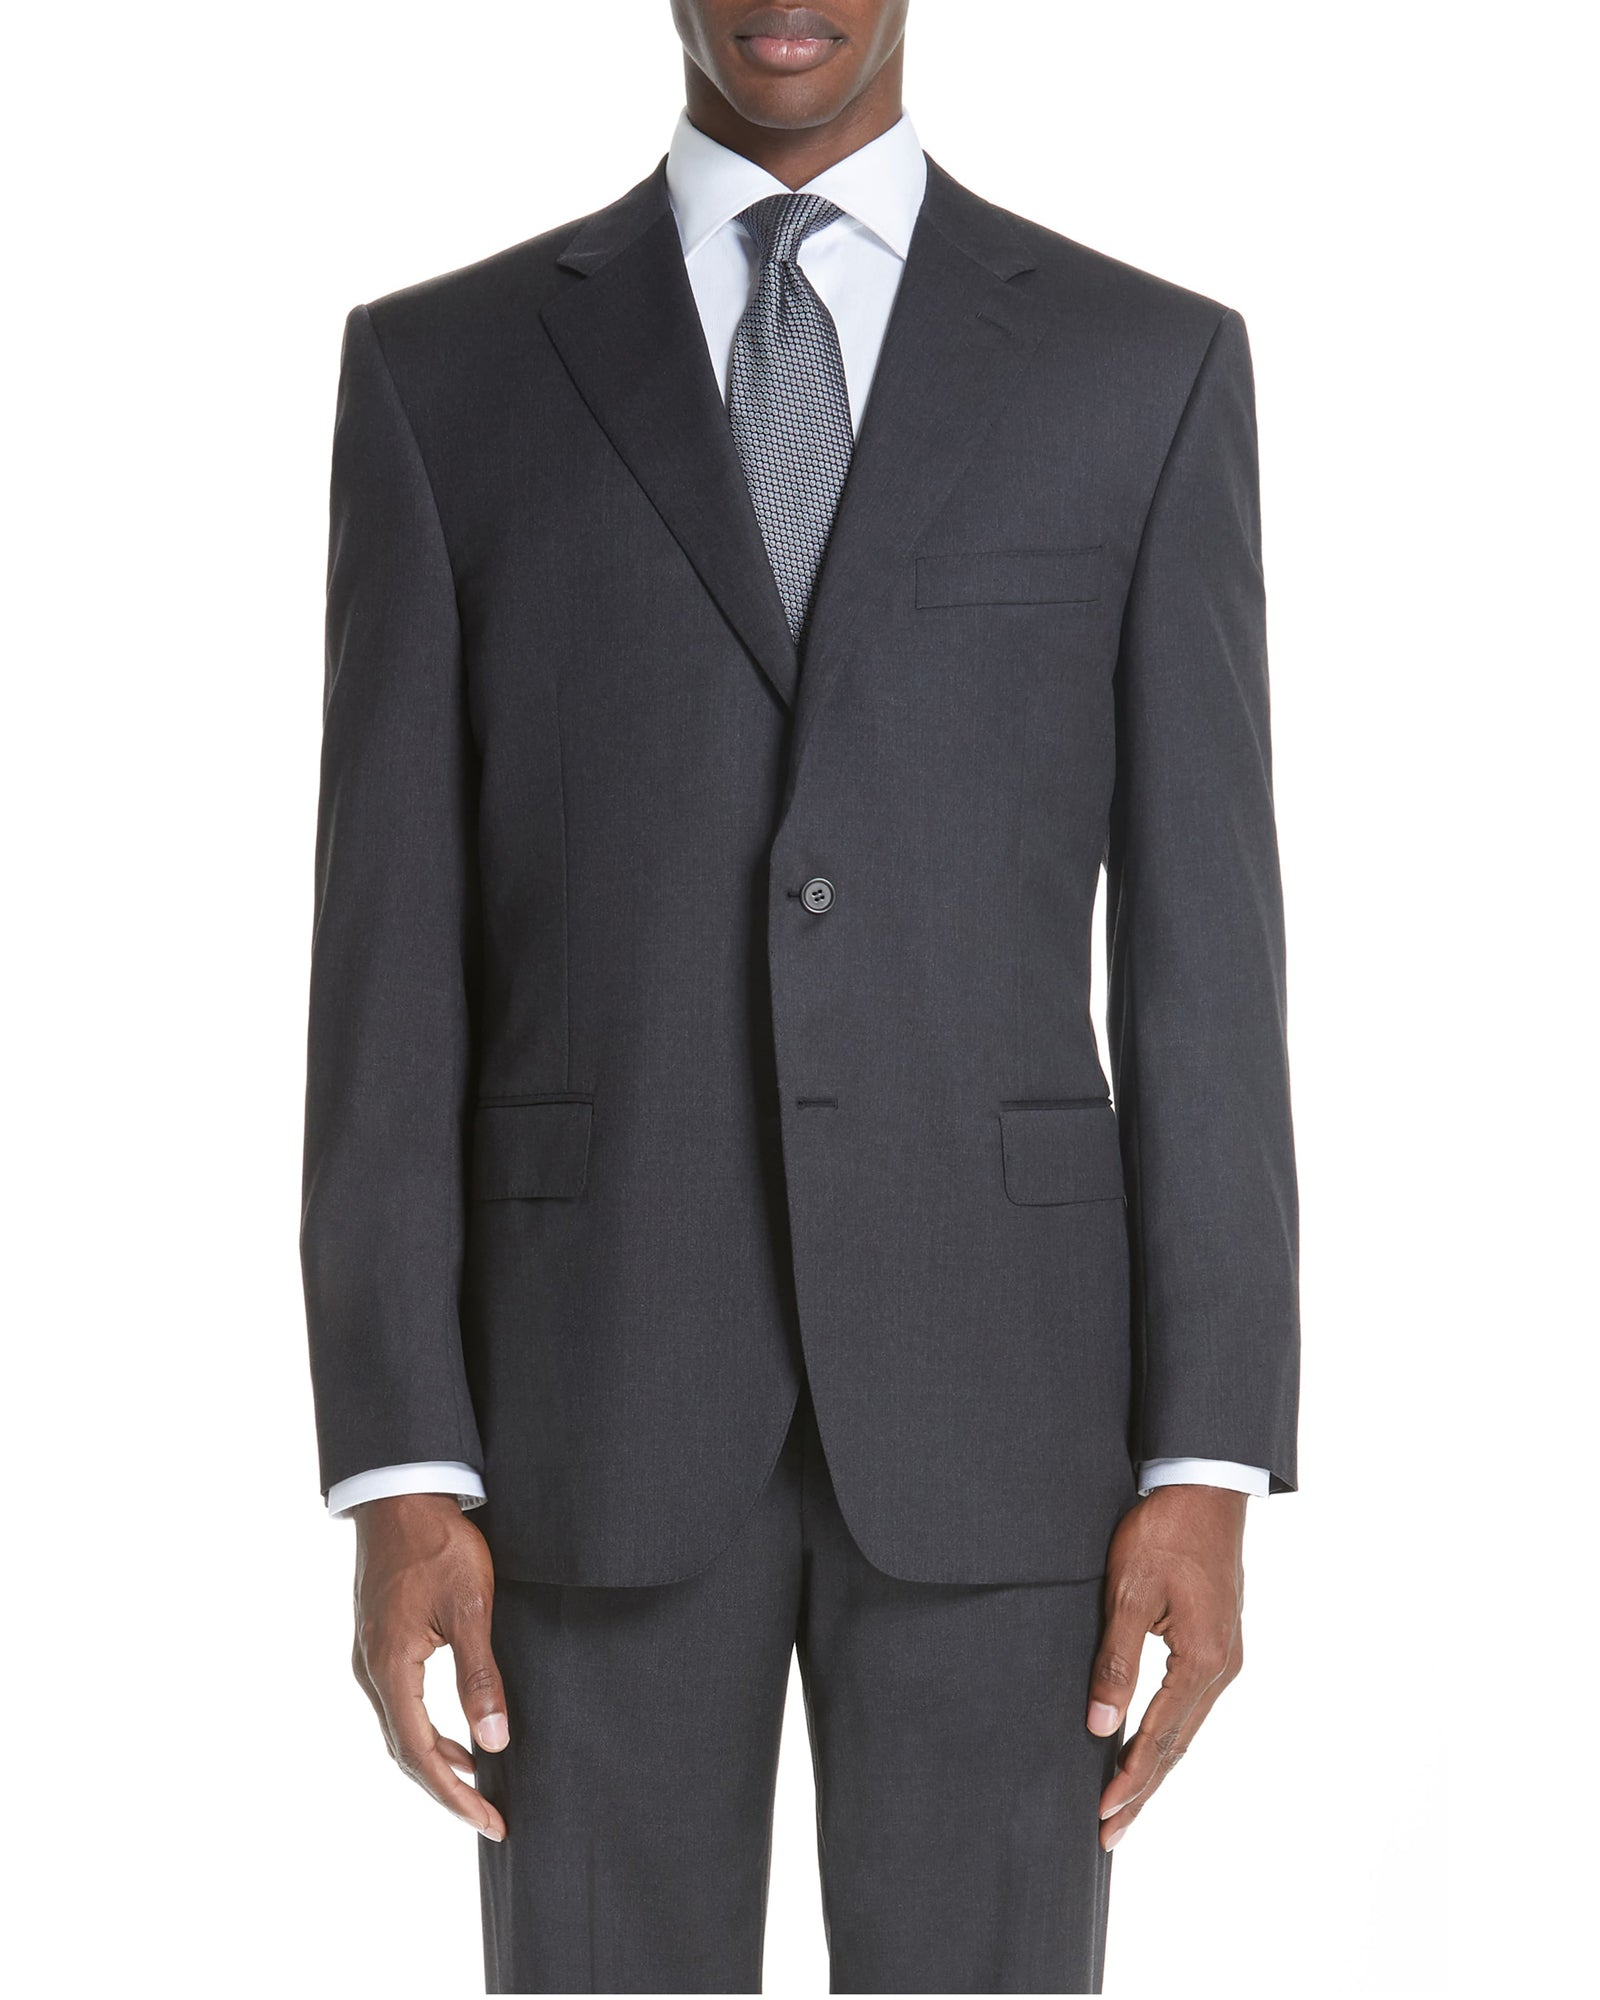 Rainwater's Charcoal Classic Fit Super 140's Wool Suit - Rainwater's Men's Clothing and Tuxedo Rental